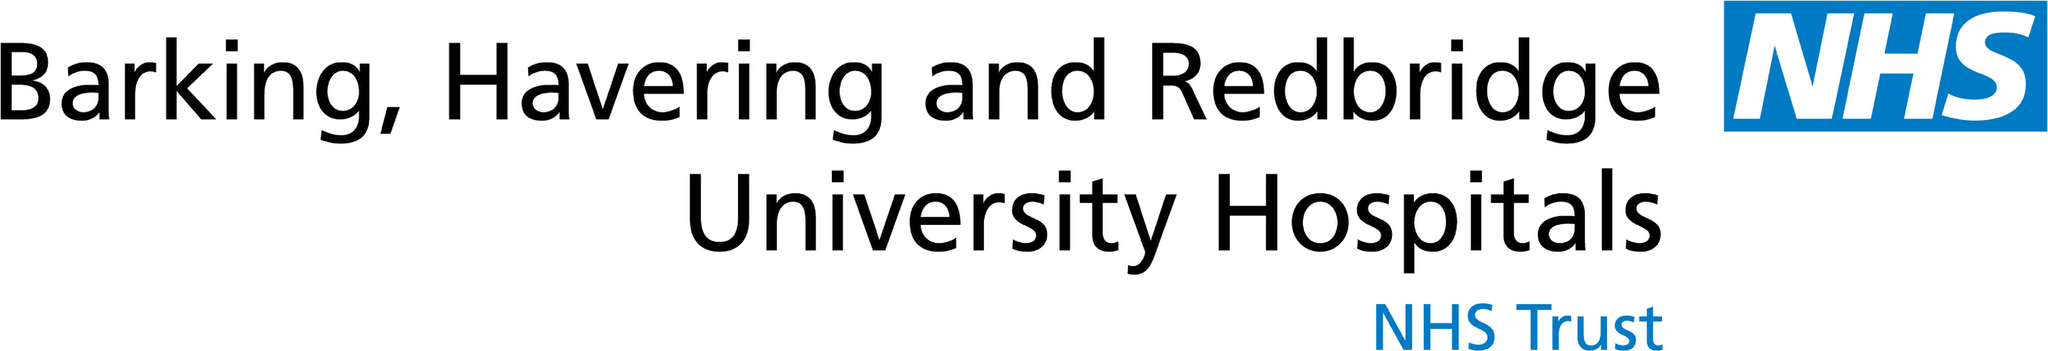 Barking, Havering and Redbridge University NHS Trust